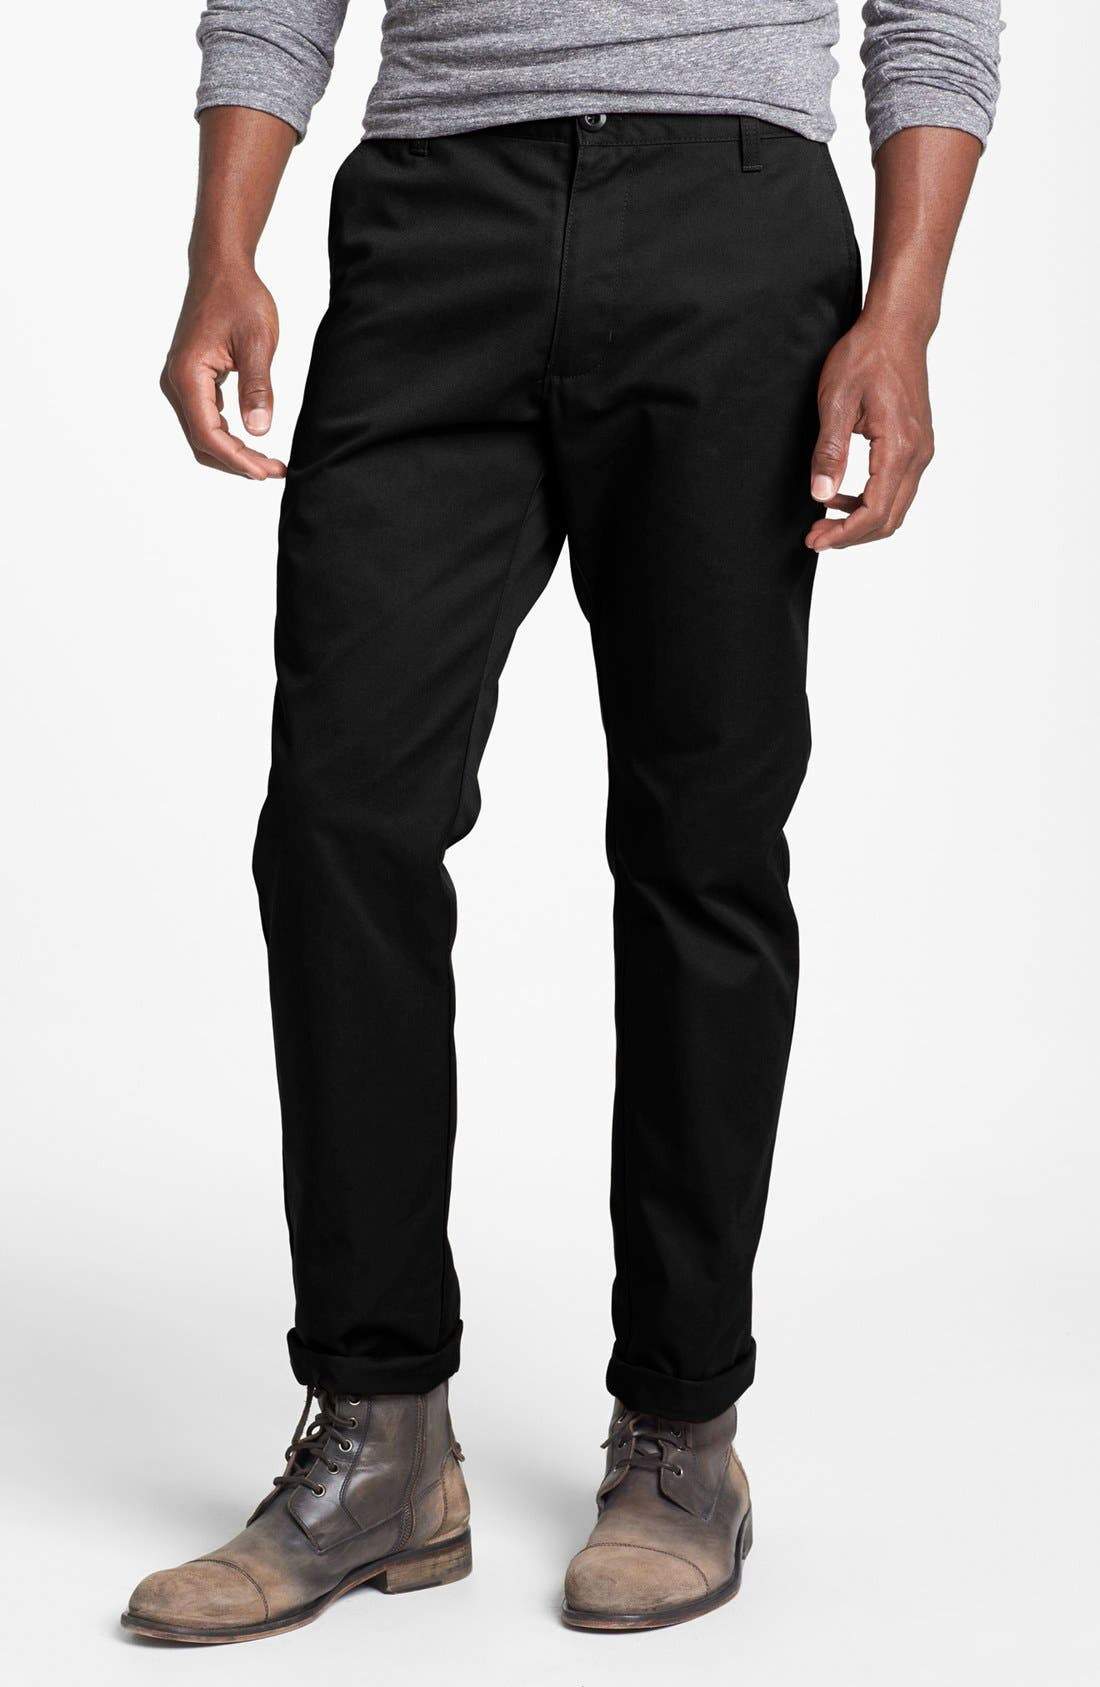 Alternate Image 1 Selected - RVCA 'The Weekend' Slim Straight Leg Chinos